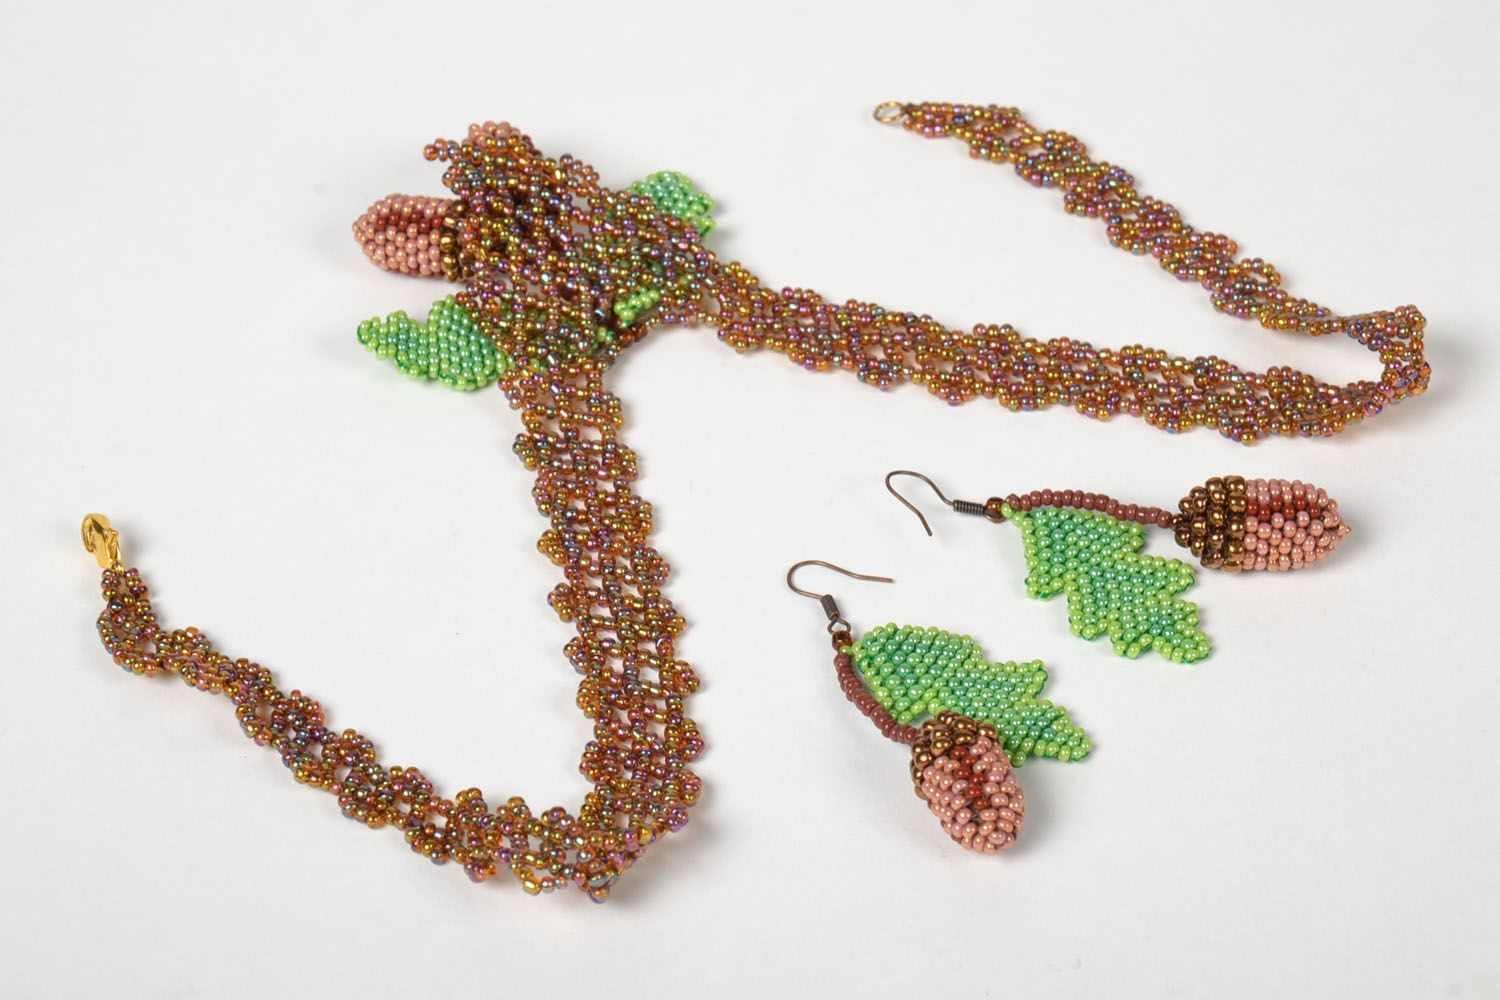 Beaded necklace and earrings photo 4